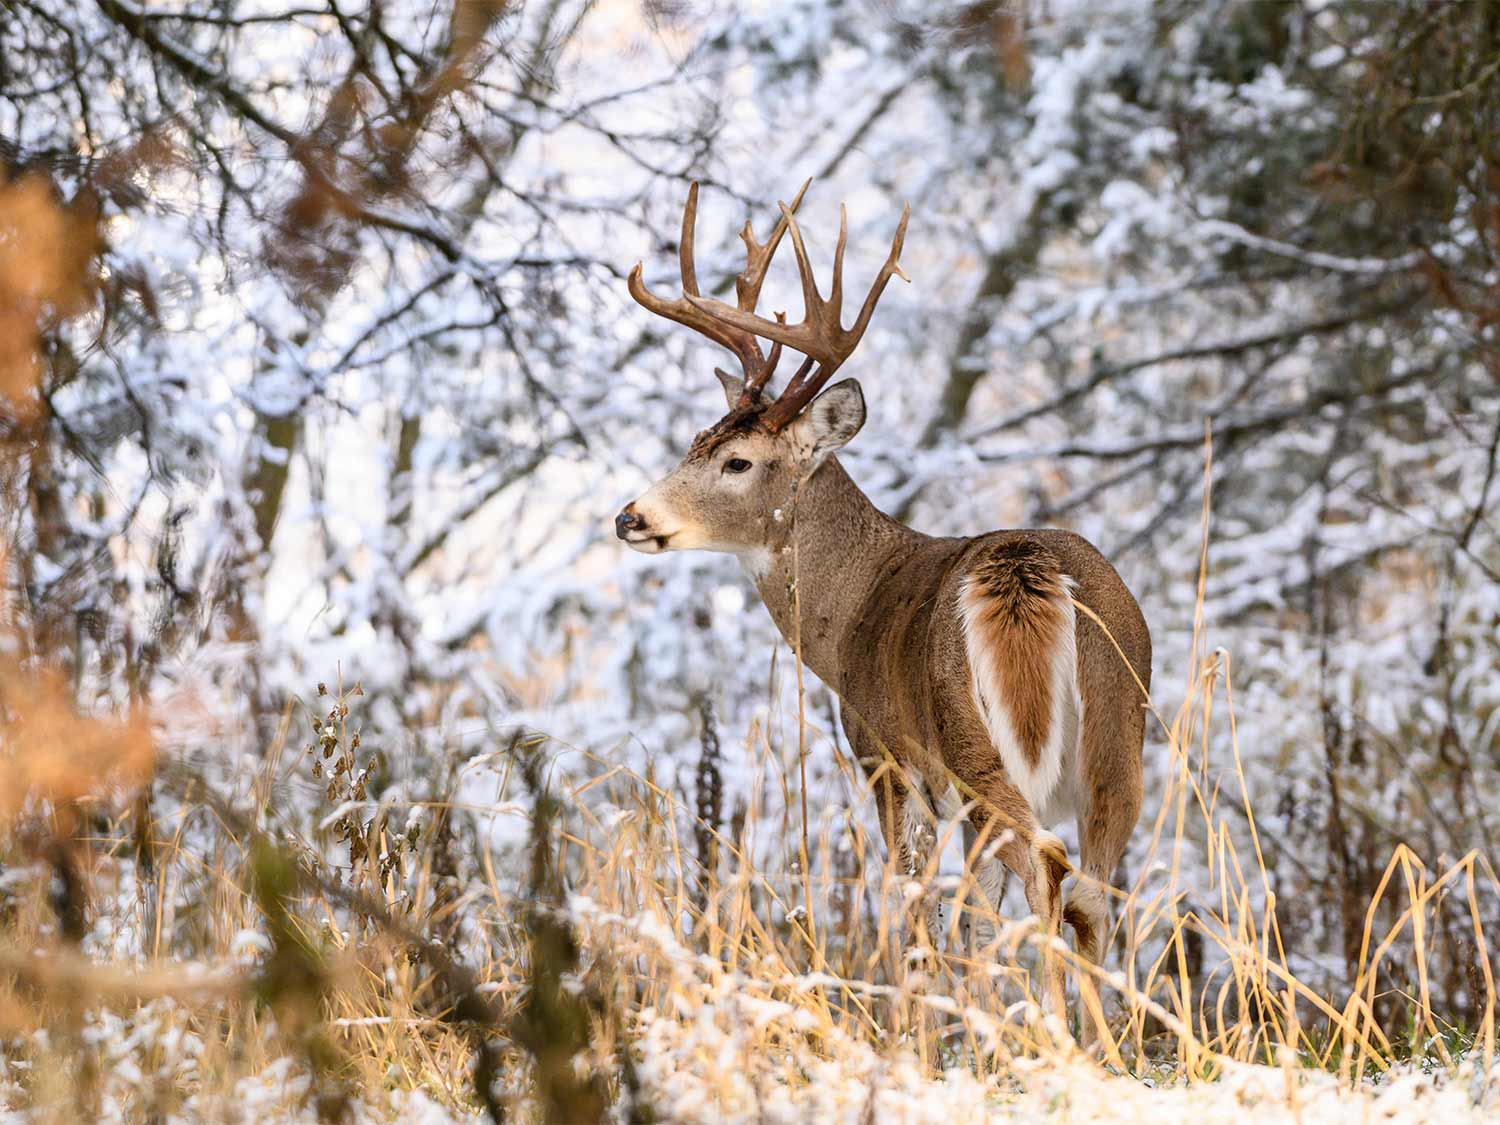 A whitetail deer walking through snow-covered woods.